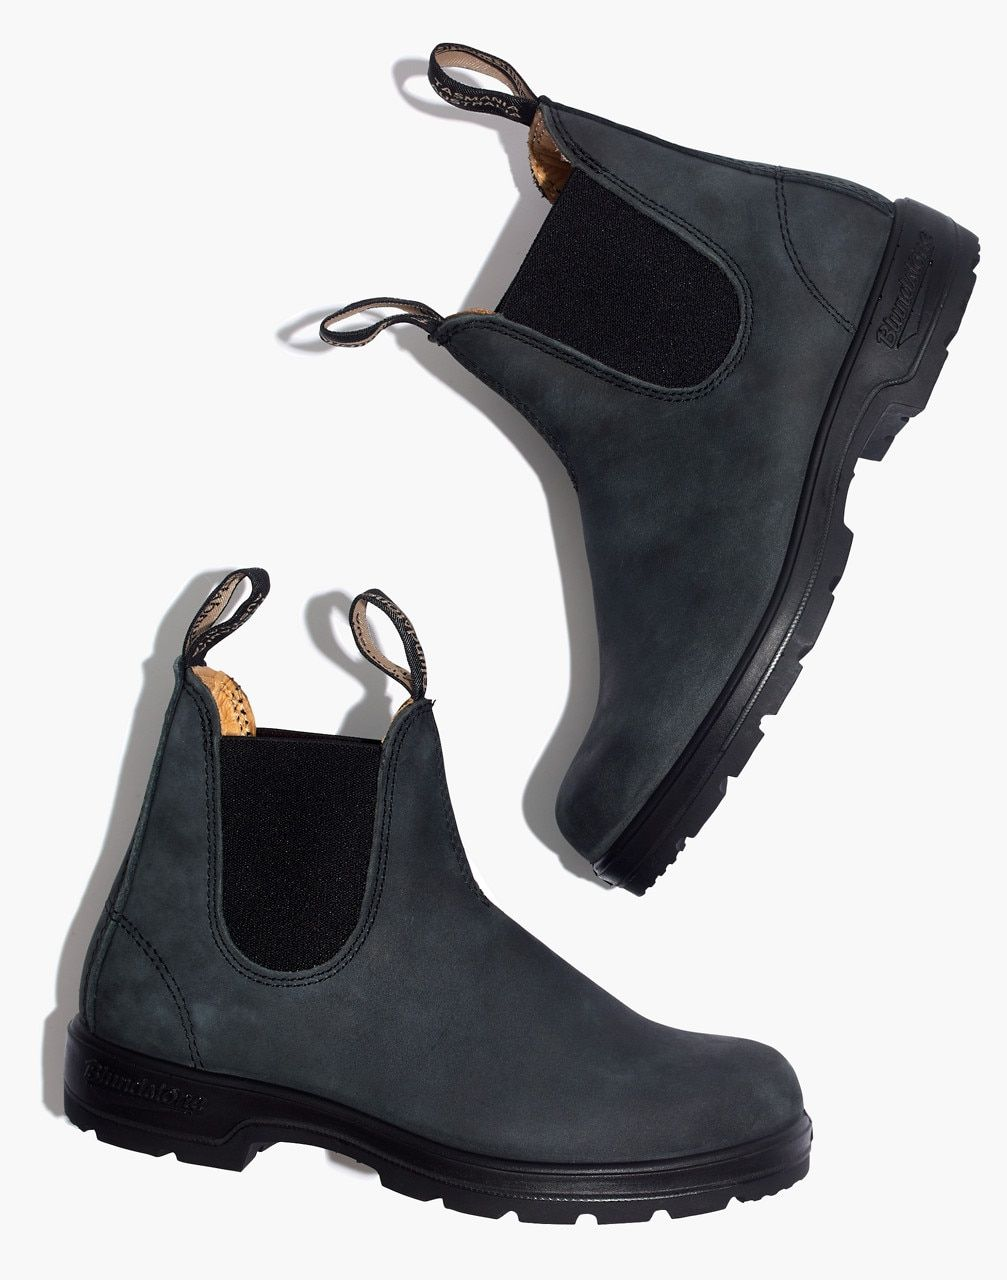 Blundstone Super 550 Chelsea Boots In 2020 Chelsea Boots Blundstone Boots Boots